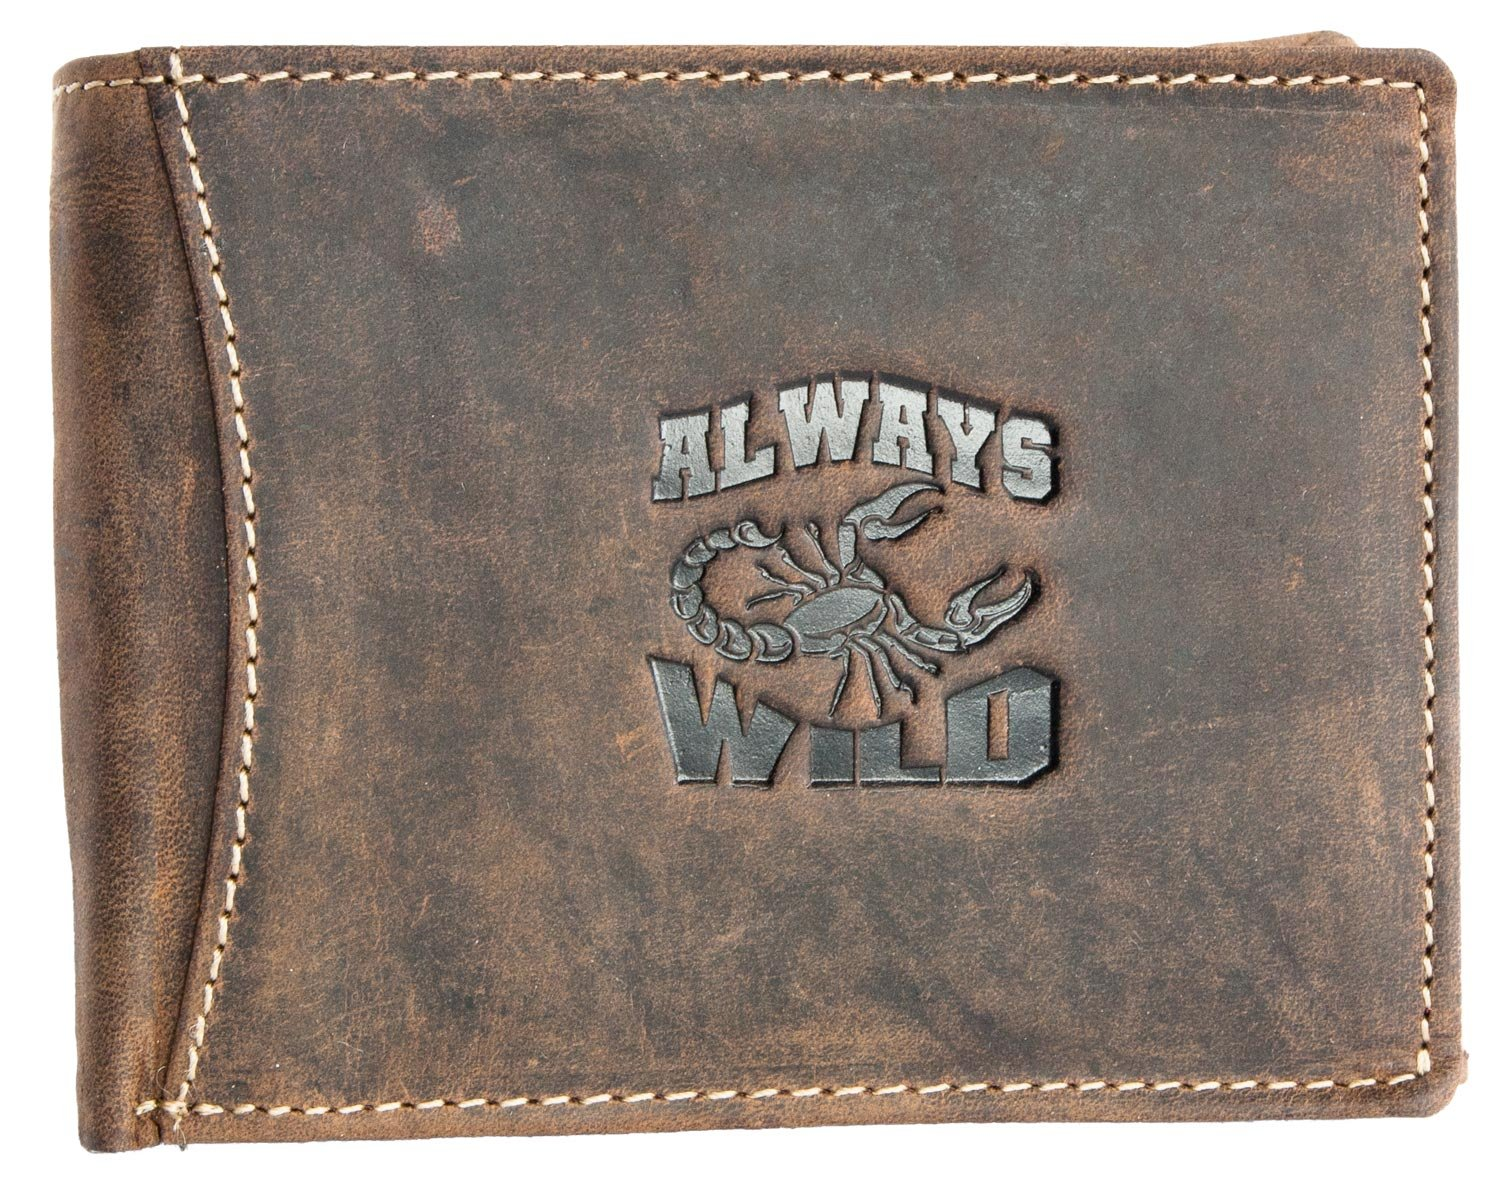 e8a3762e0701 Always Wild Men's Hunter Style Genuine Leather Wallet With Scorpion ...